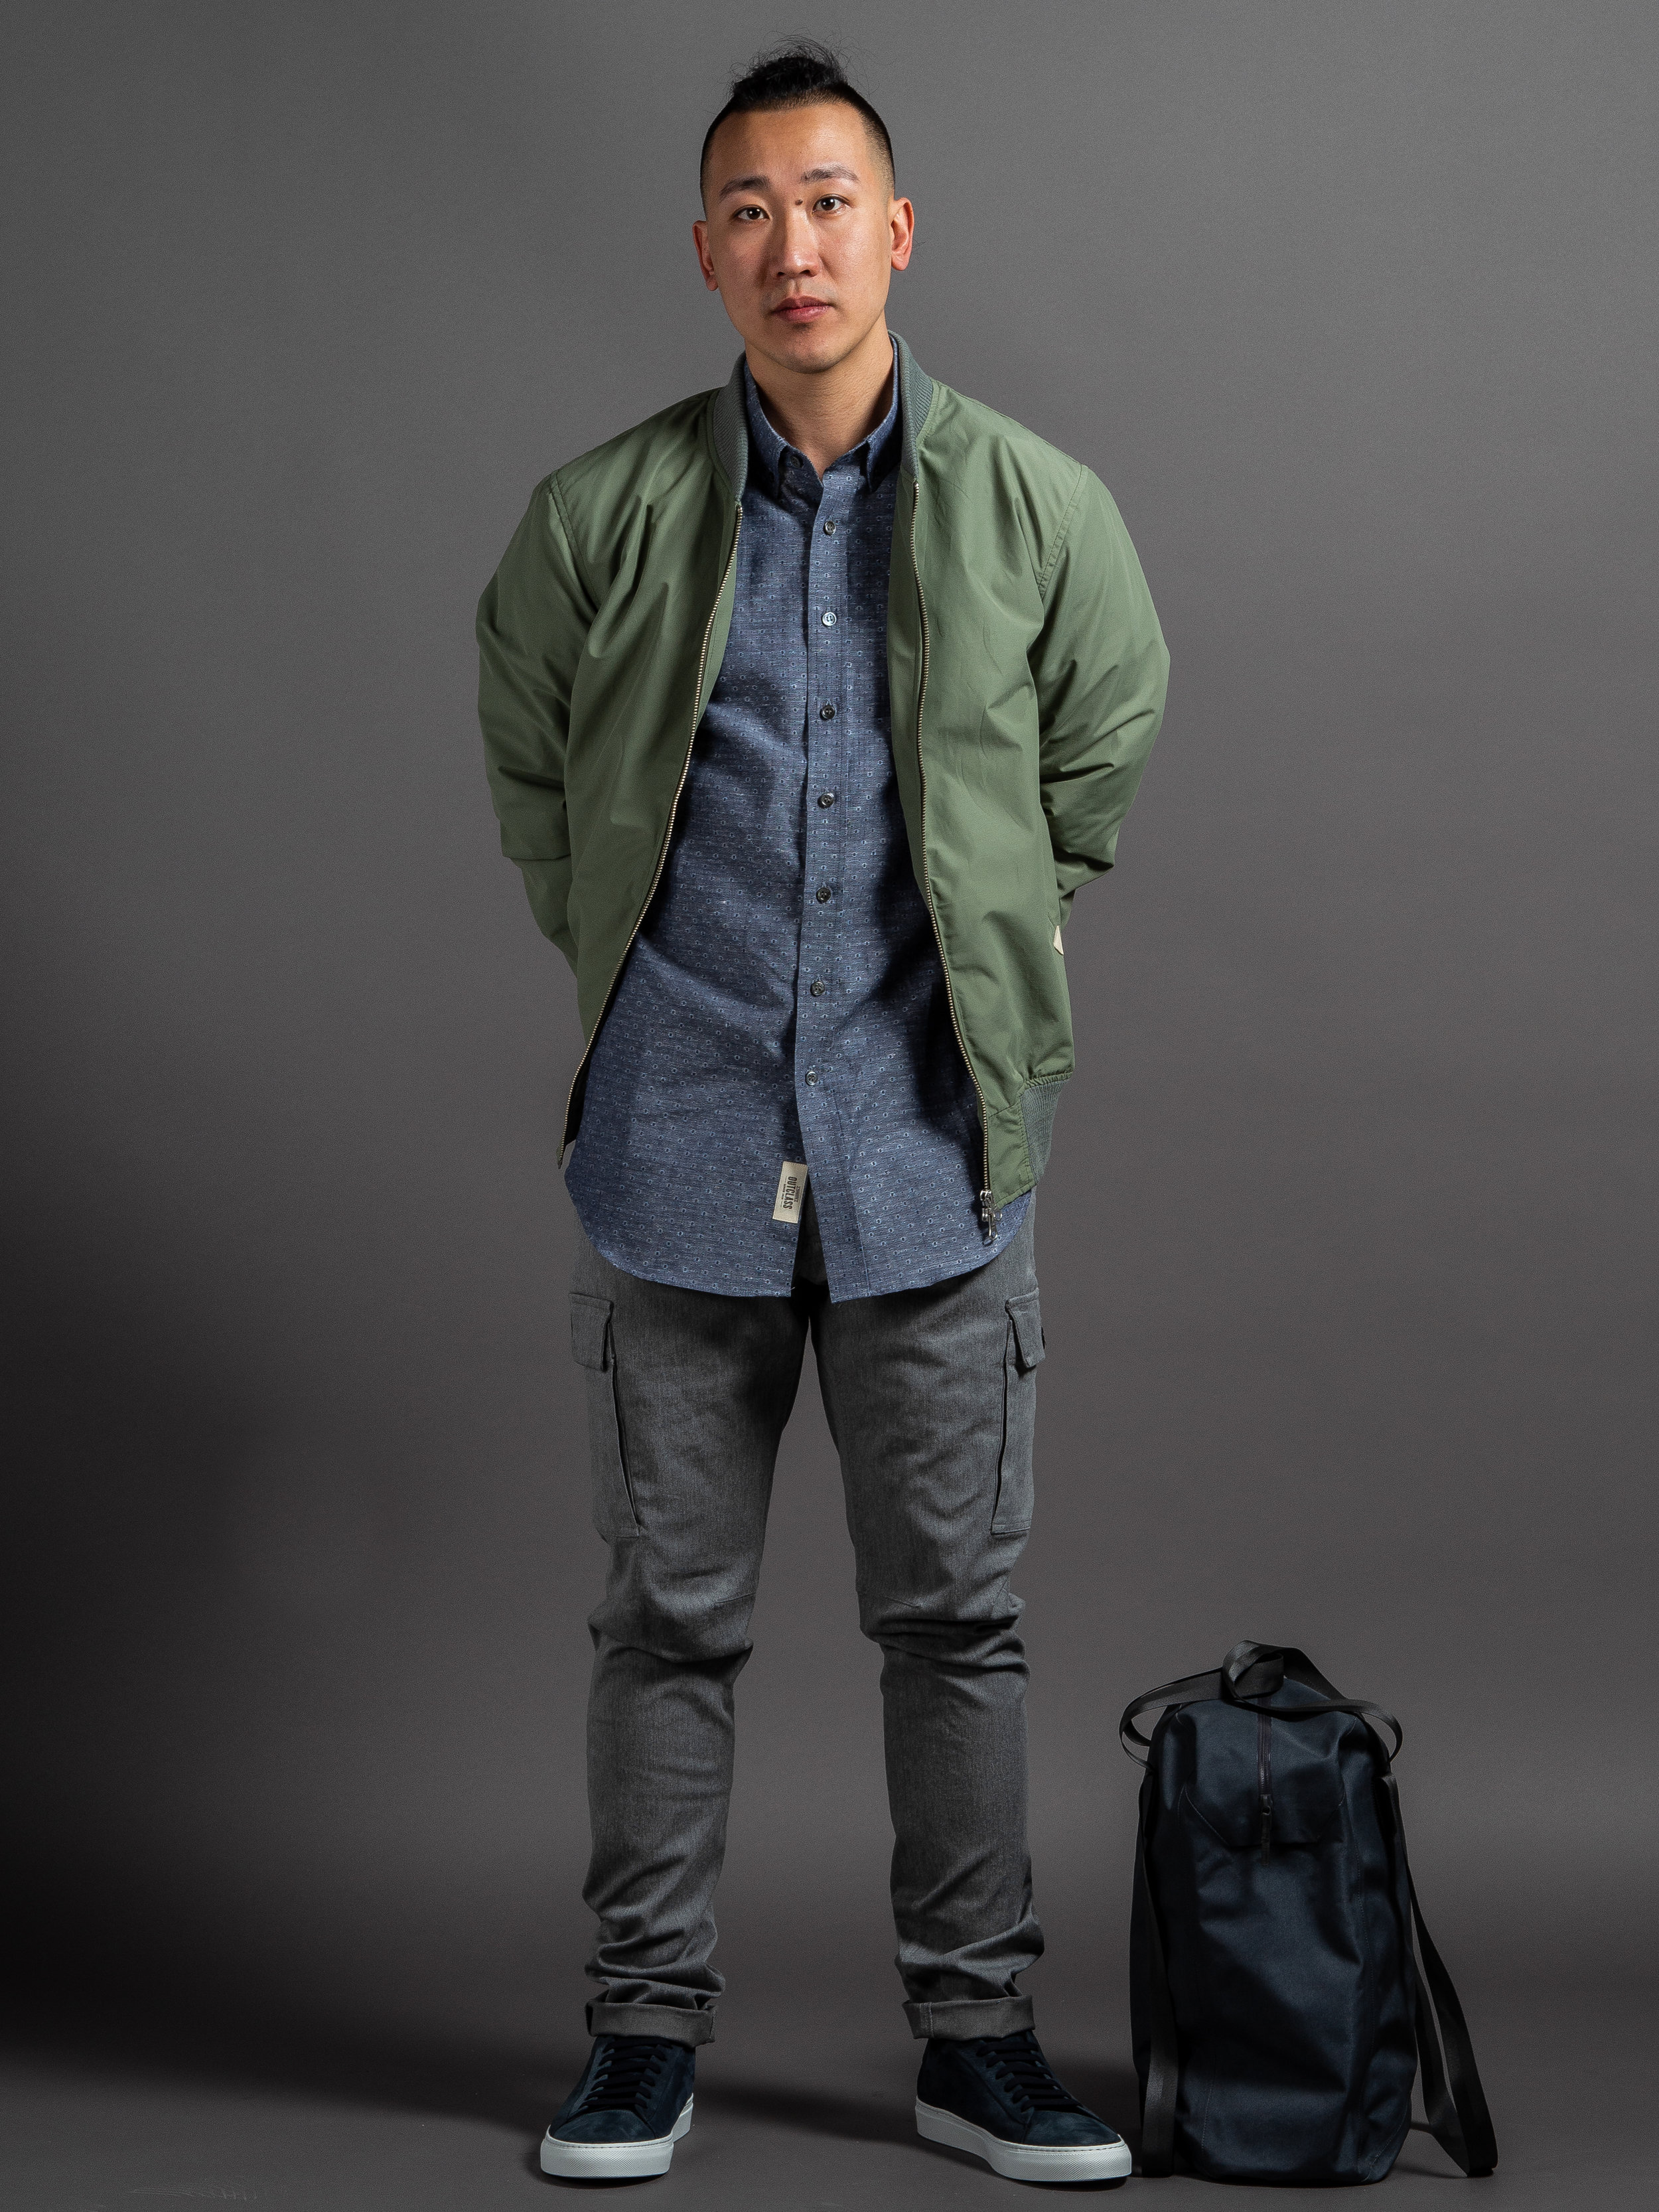 Outclass Bomber Jacket  Outclass Linen Dobby Shirt  Outclass Stretch Expedition Pants  Wings + Horns Nubuck Court Sneakers    SHOP THIS LOOK